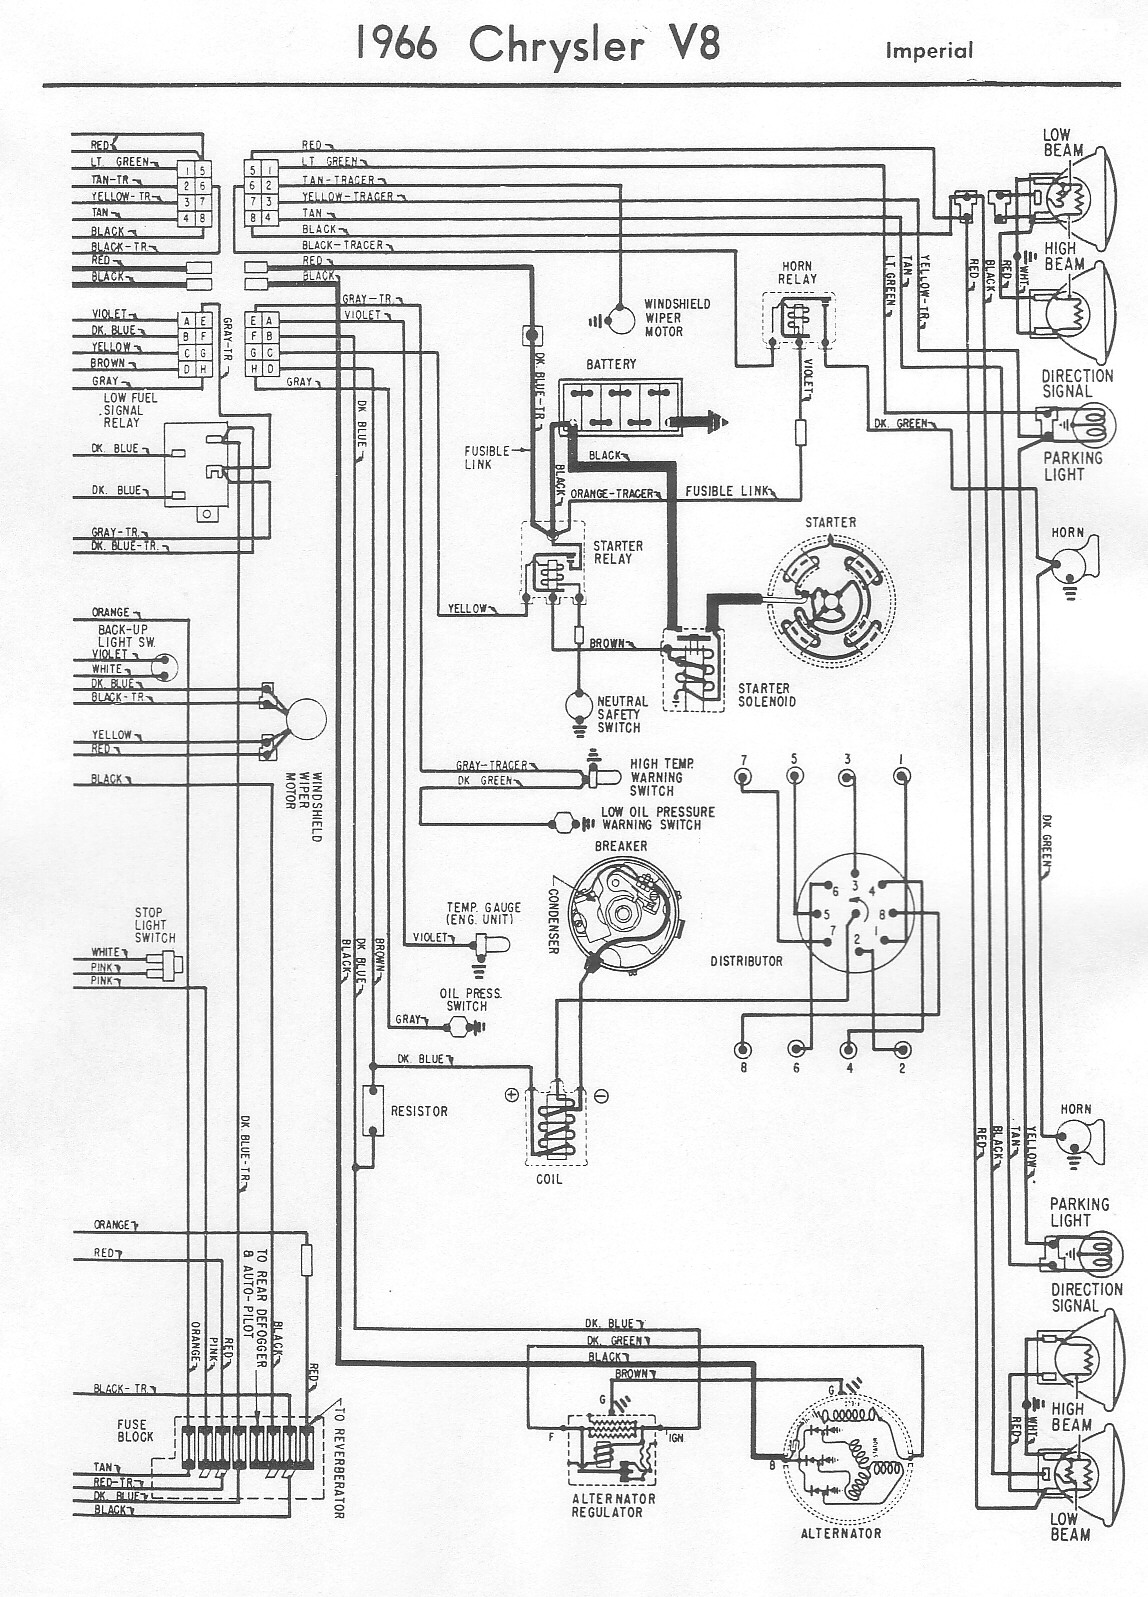 hight resolution of 1964 chrysler 300 wiring diagram automotive wiring diagrams 2005 chrysler 300 stereo wiring diagram 1966 chrysler